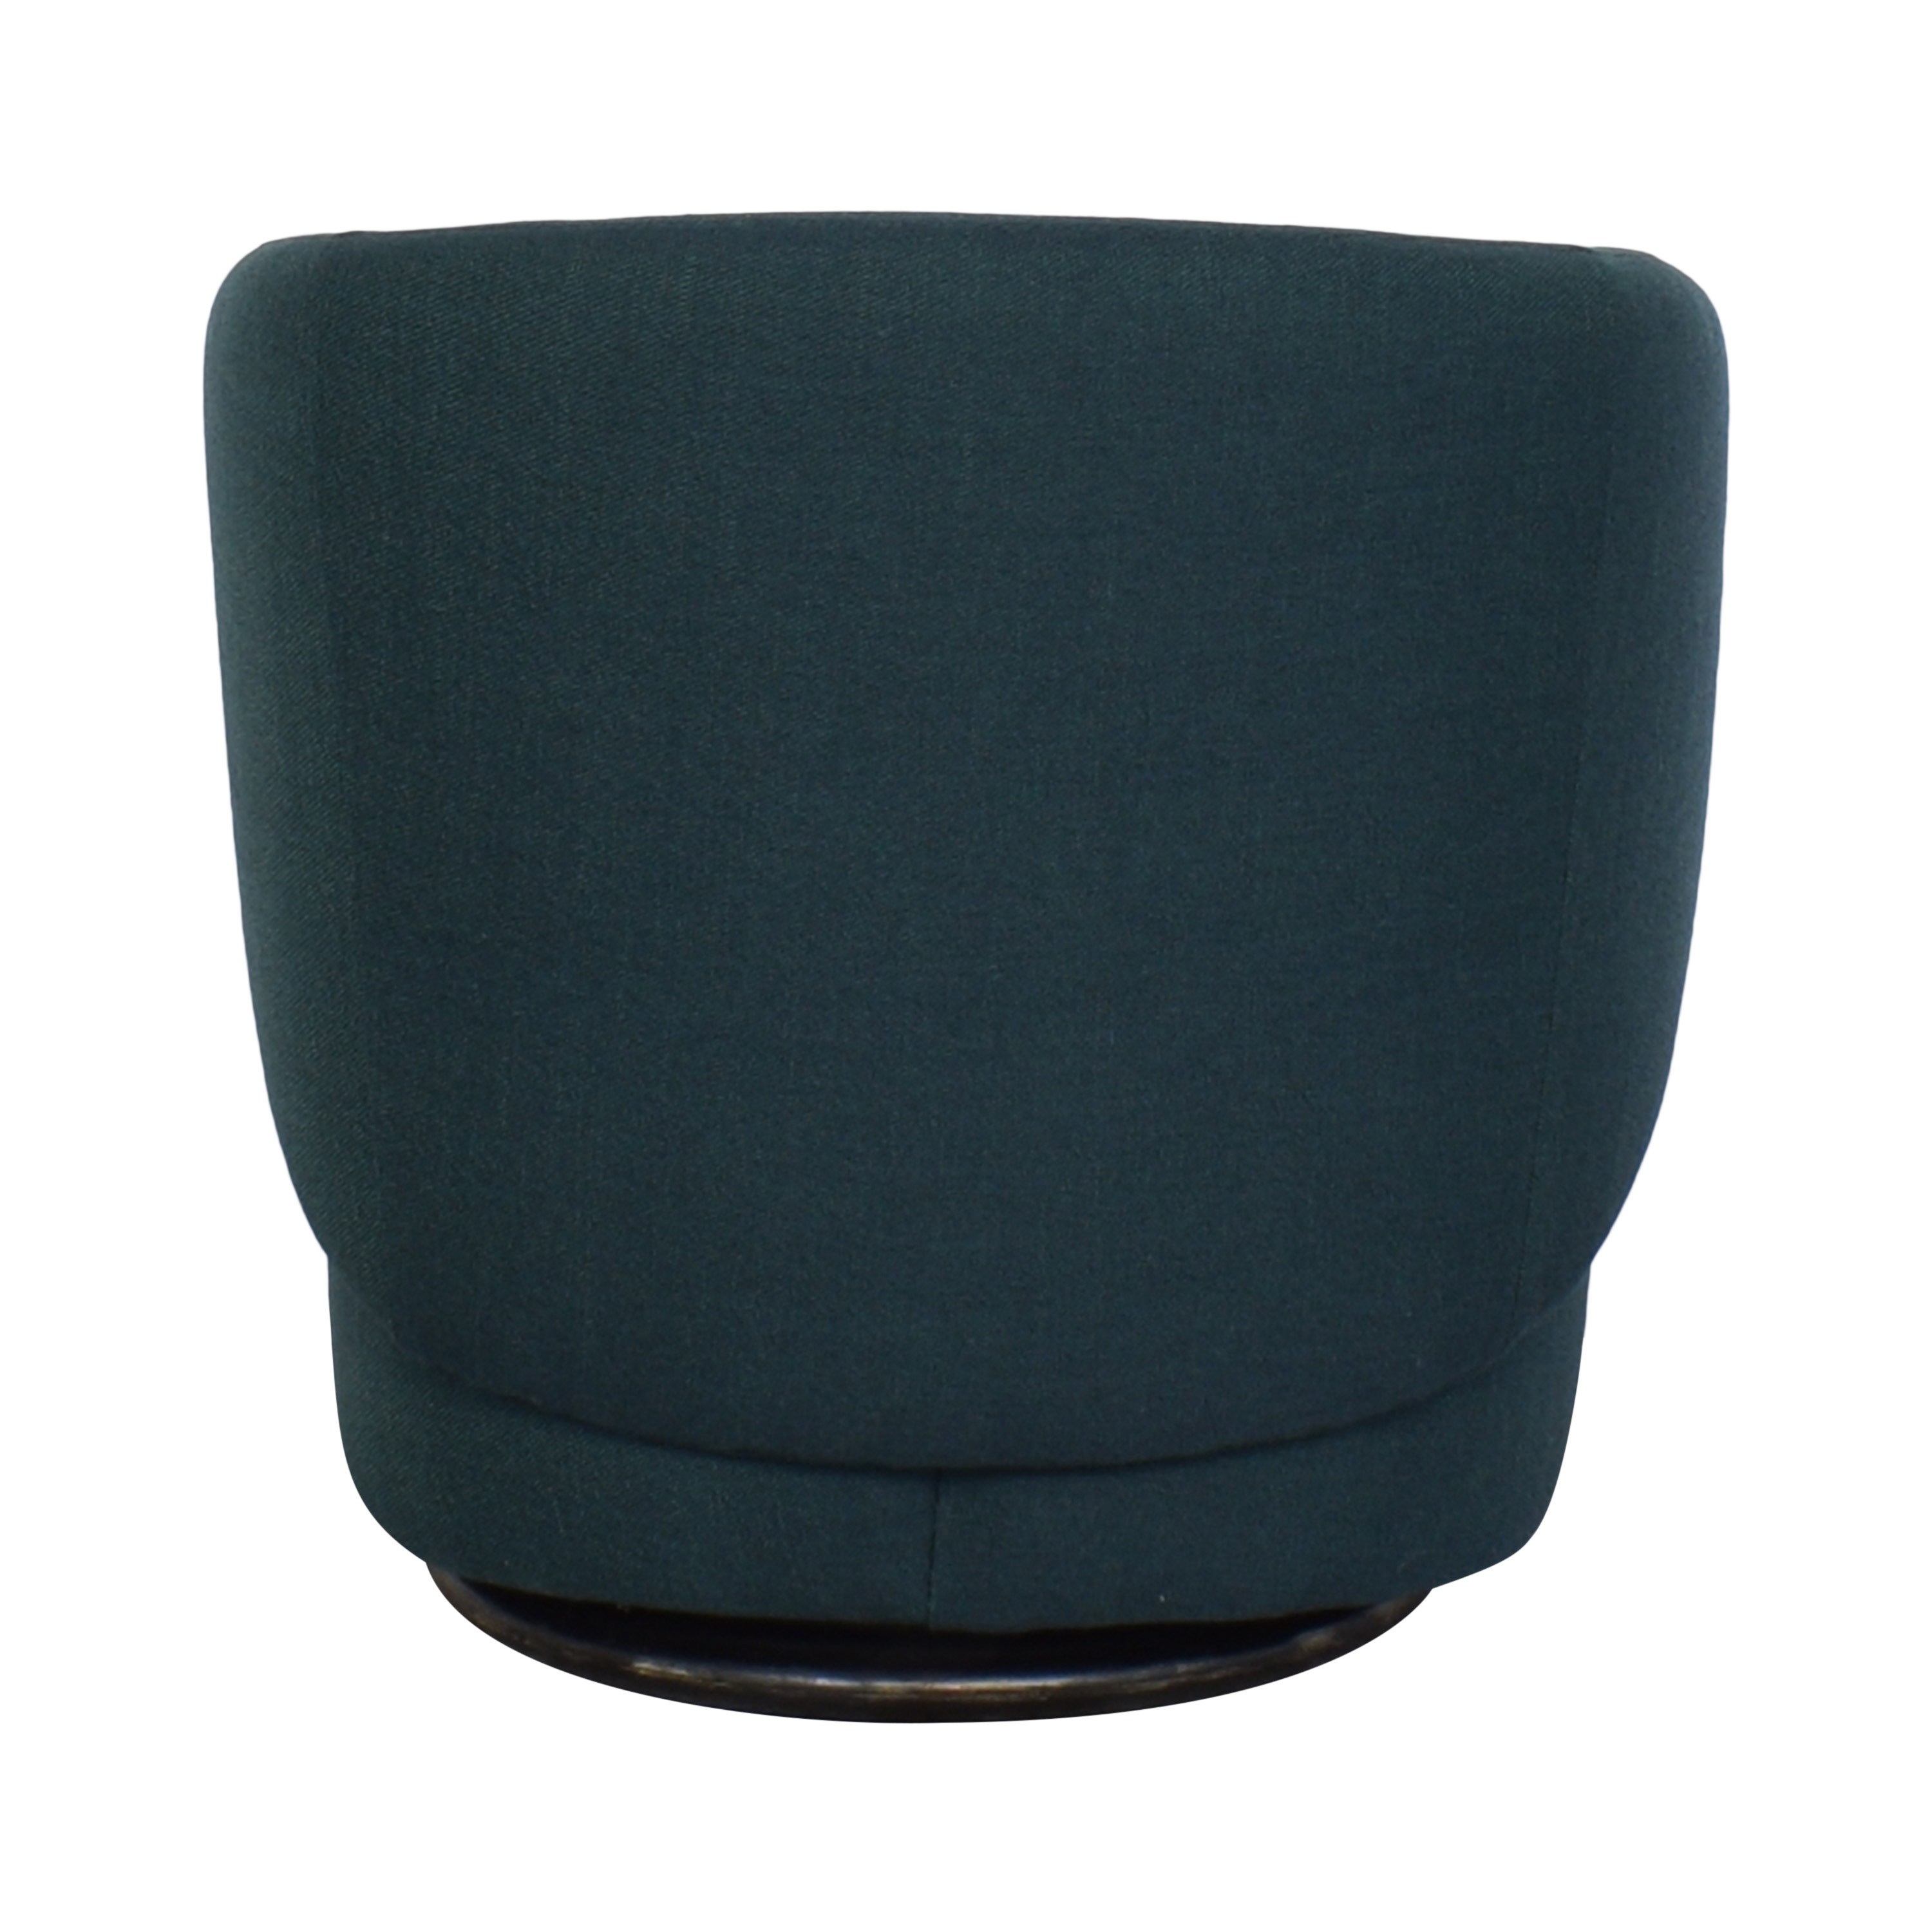 West Elm West Elm Crescent Swivel Chair used